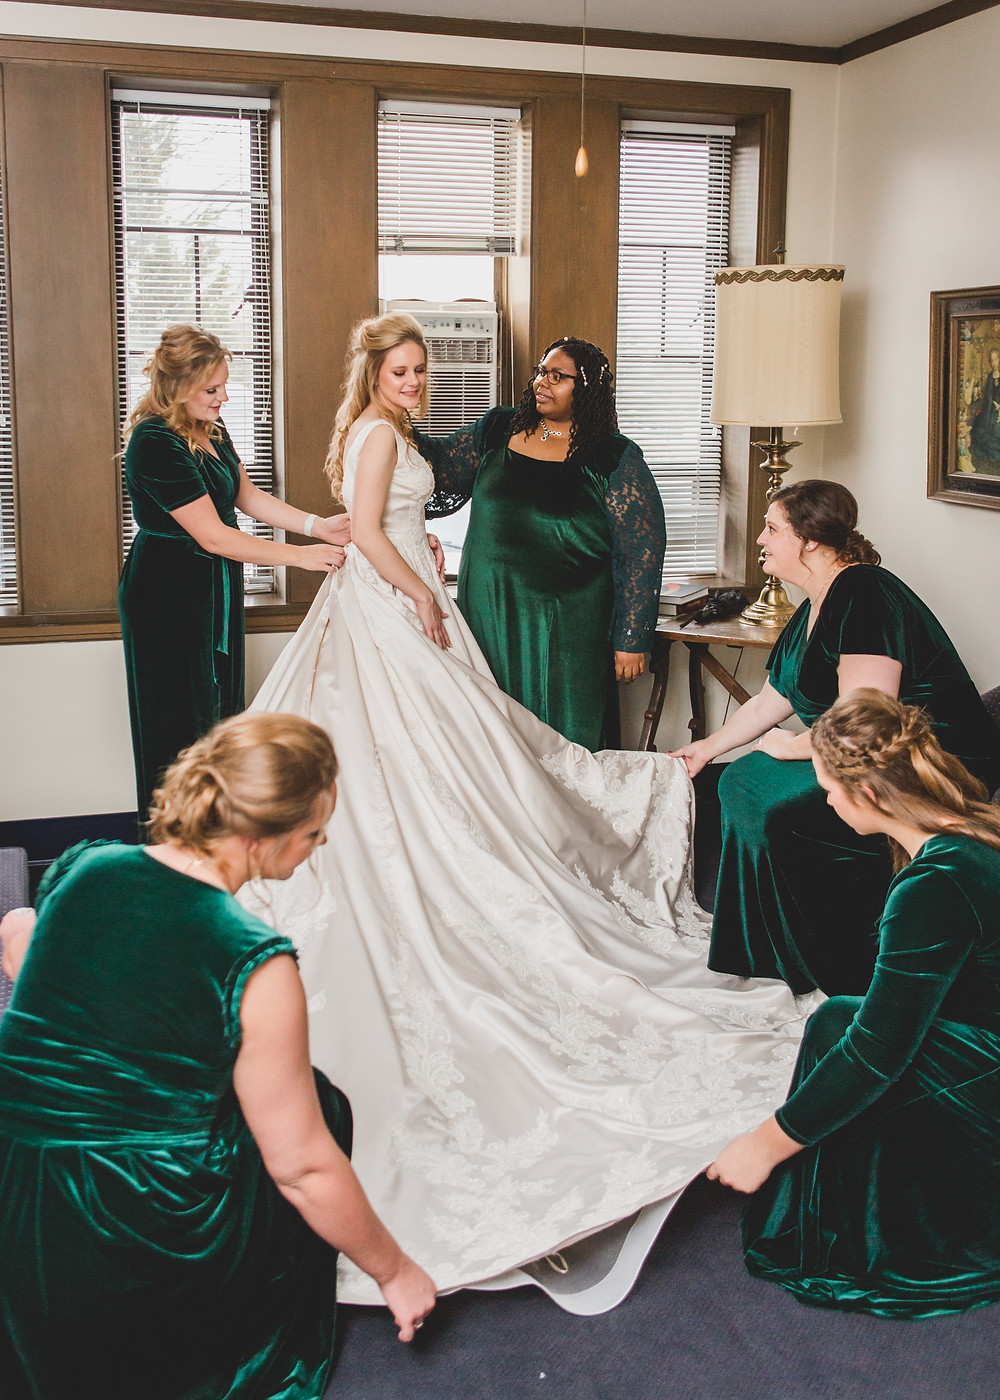 Bride and bridesmaids, Getting ready wedding photos, Illinois Wedding Photographer Composed and Exposed Photography